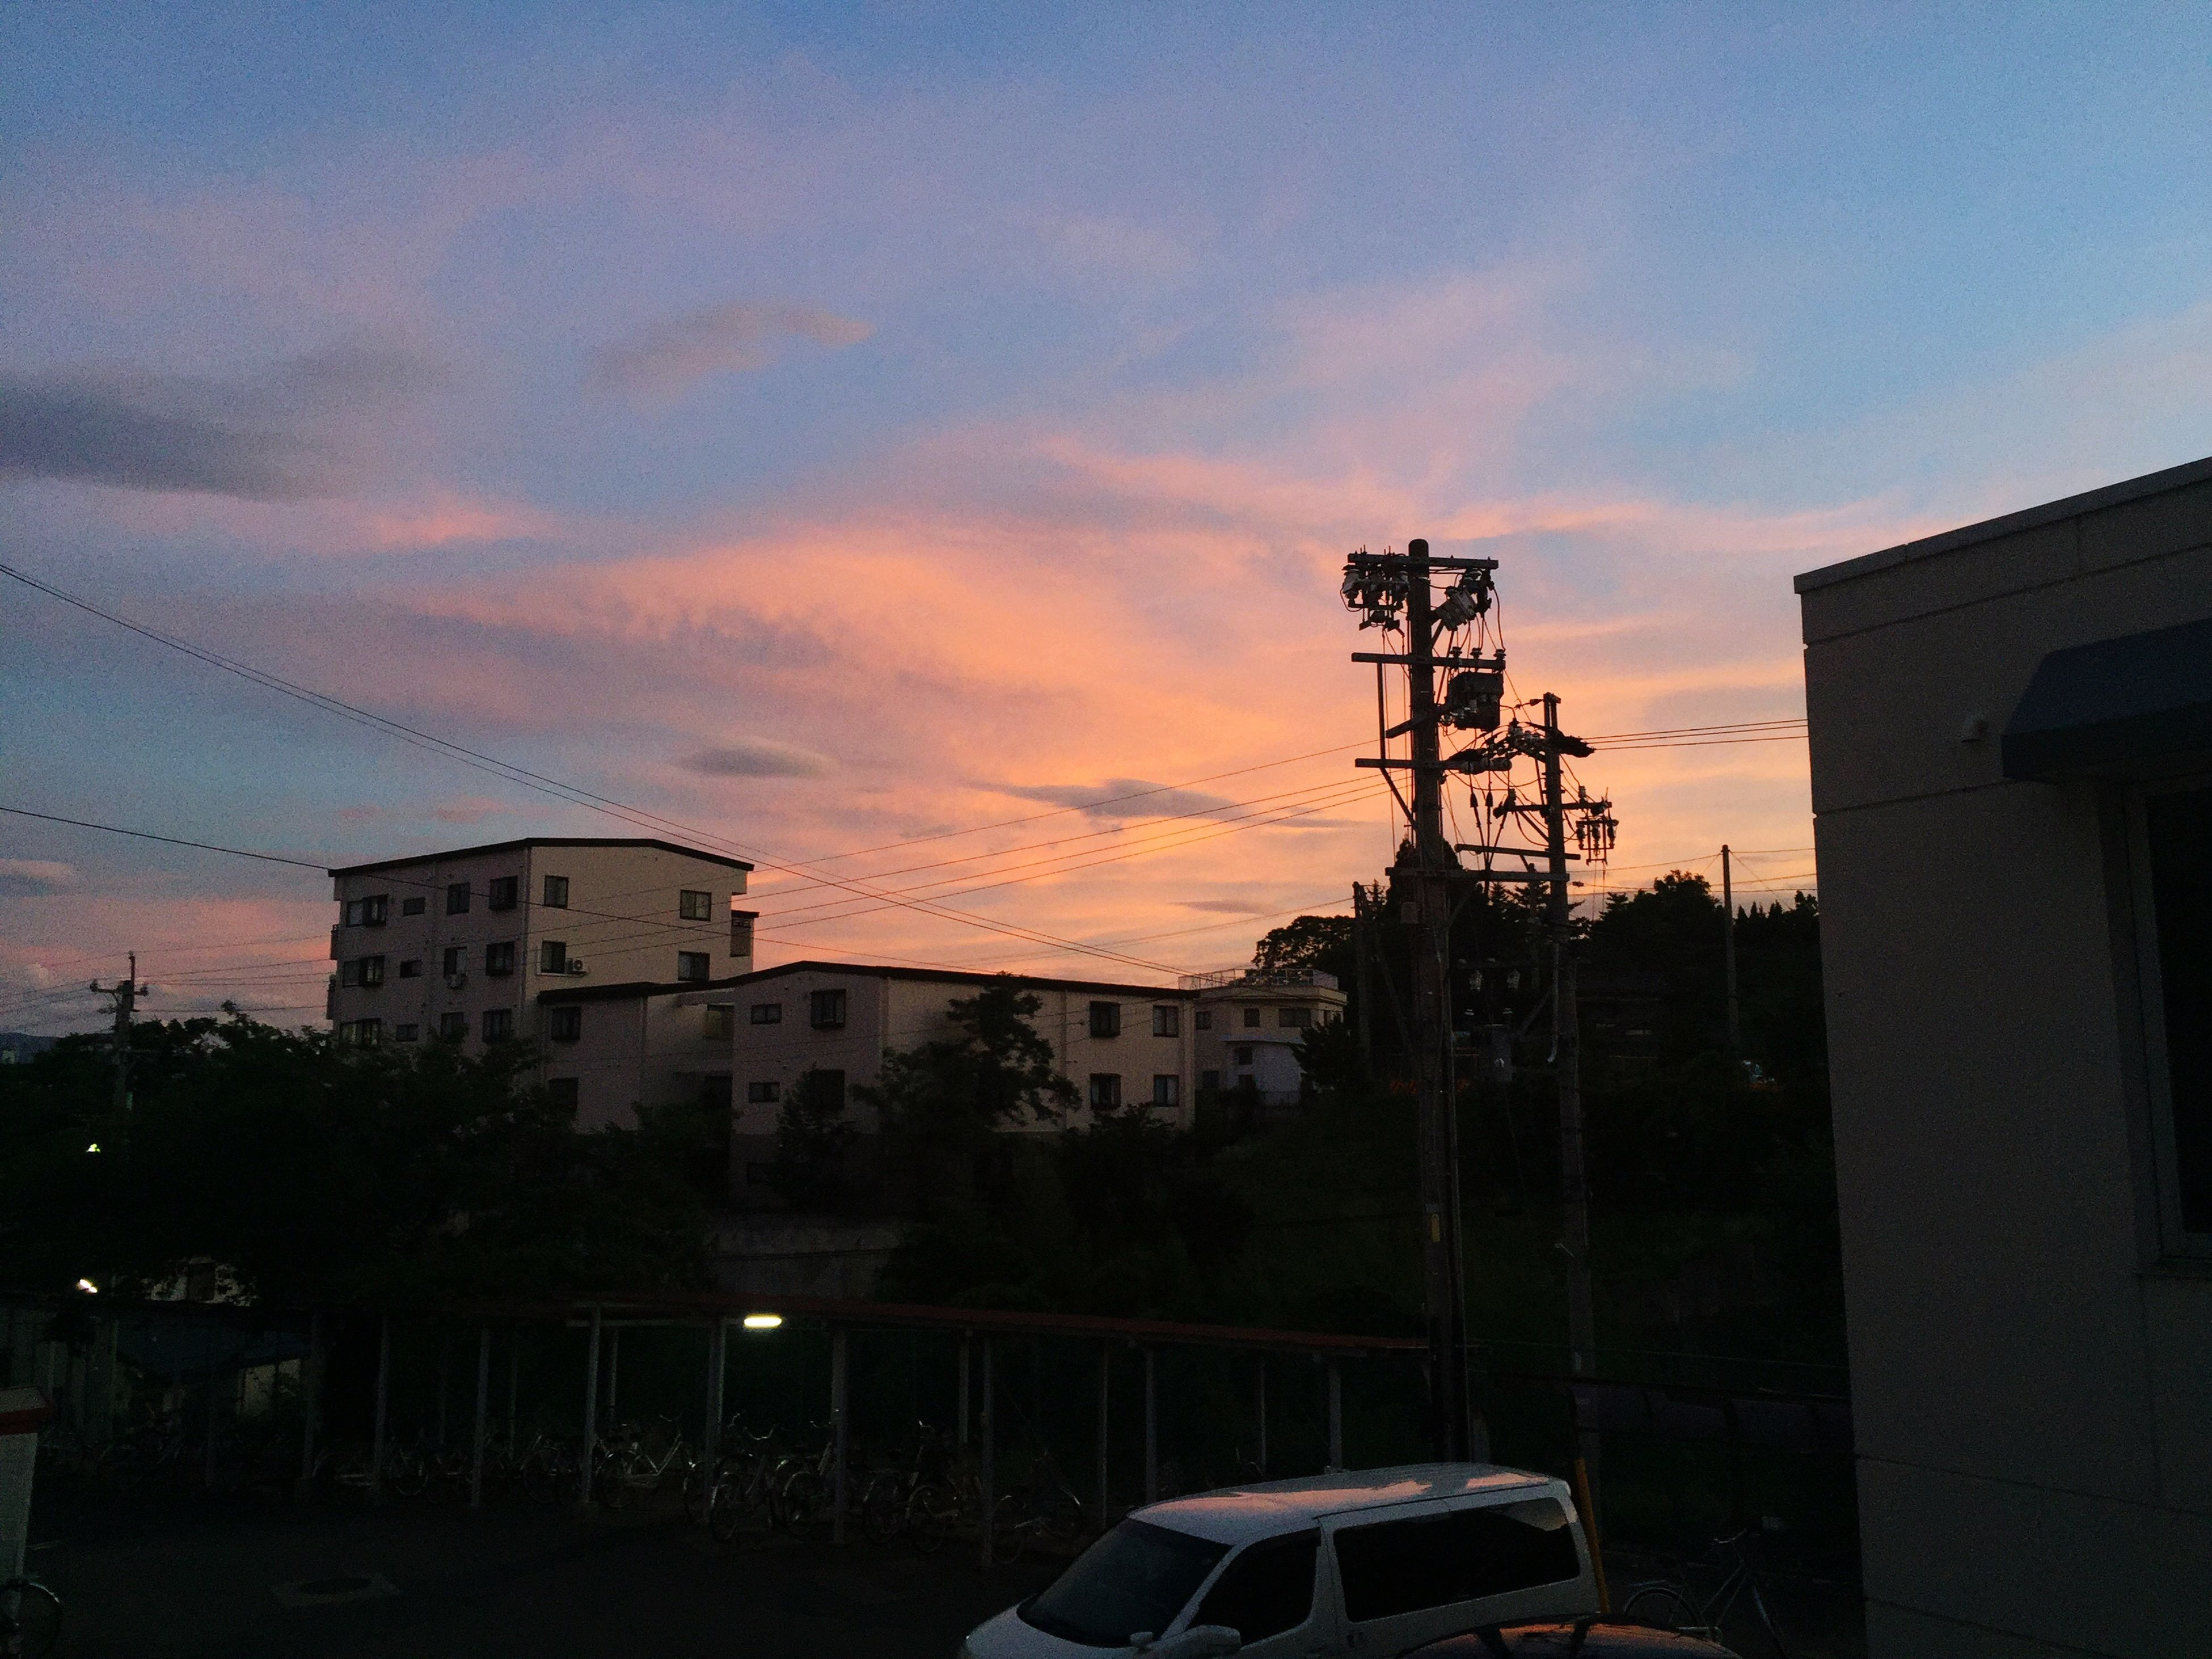 building exterior, architecture, built structure, sunset, sky, power line, electricity pylon, house, orange color, residential structure, electricity, silhouette, cloud - sky, tree, residential building, cable, power supply, city, connection, outdoors